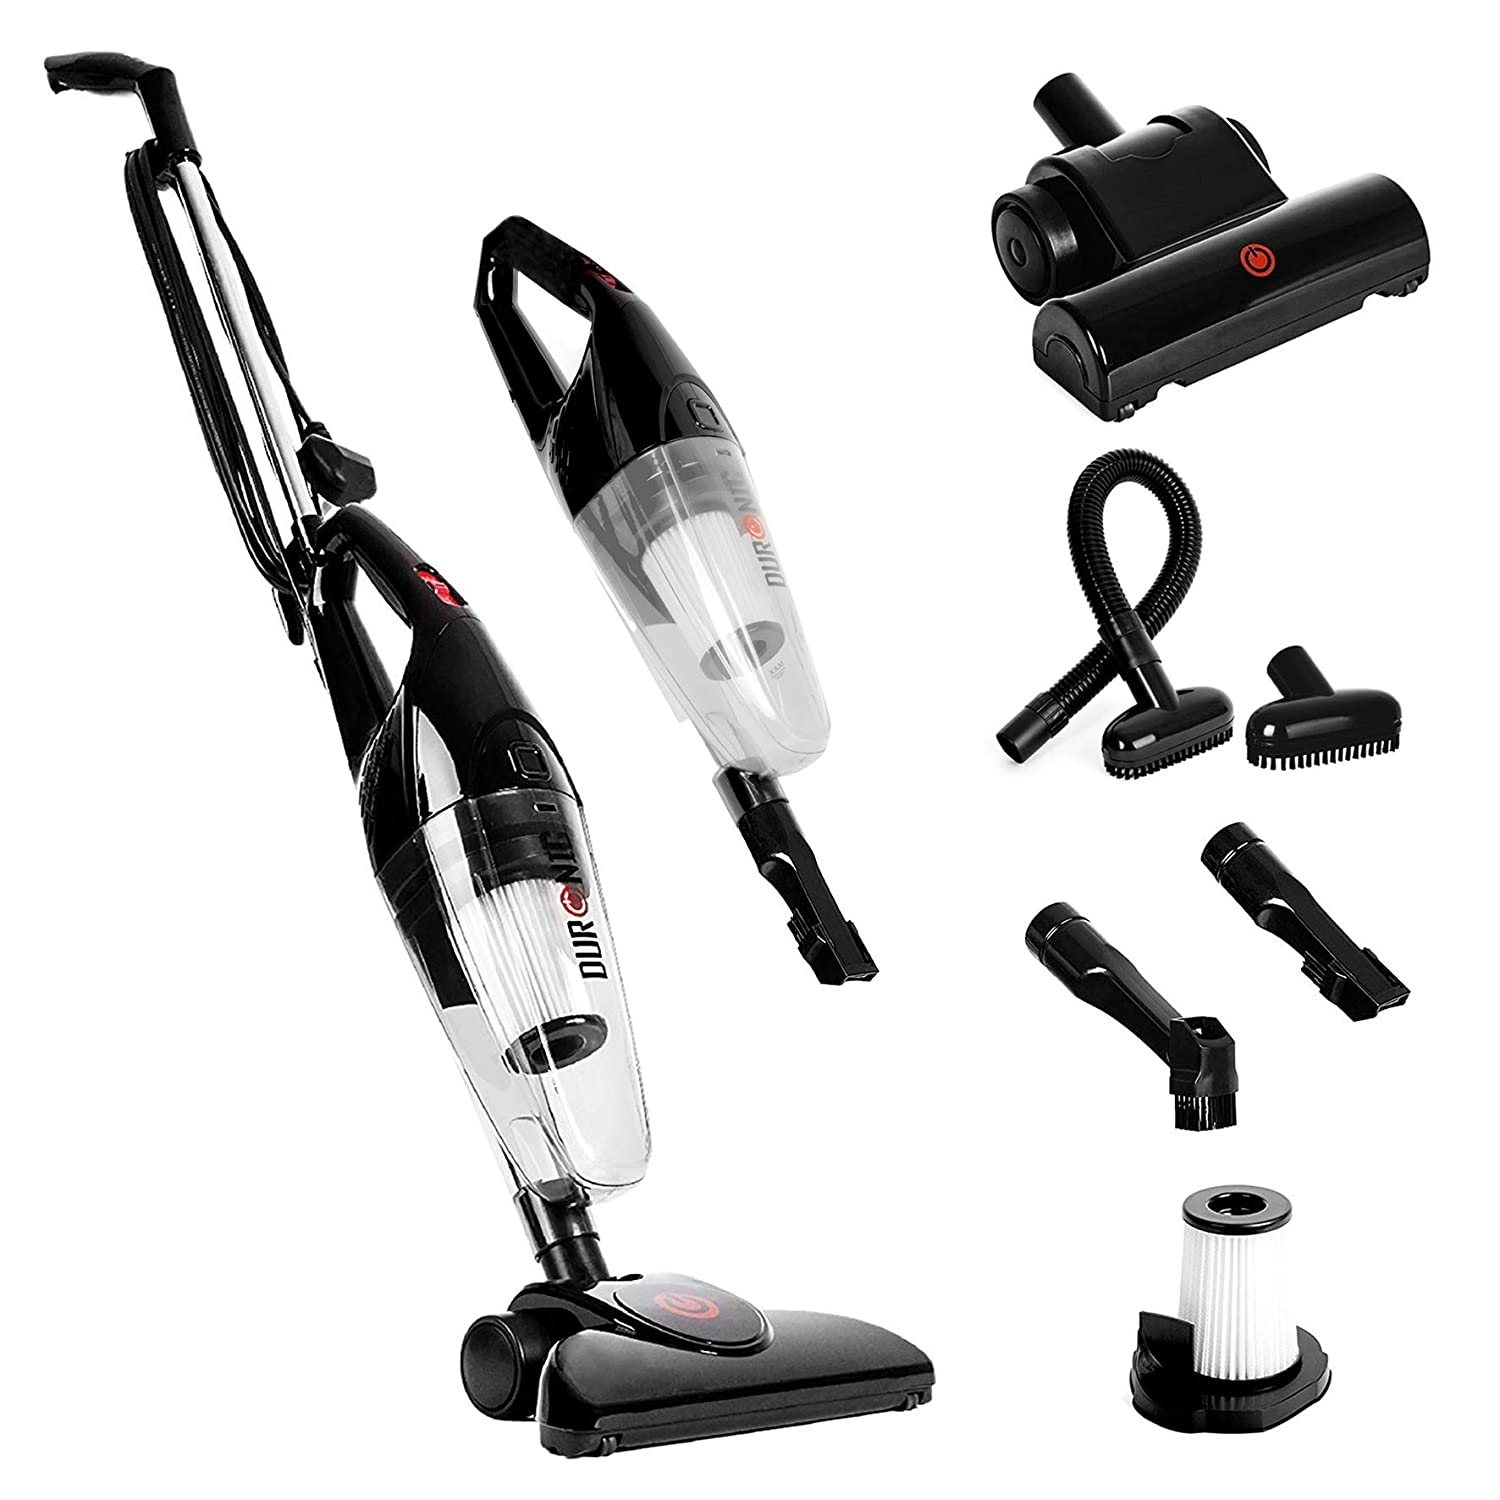 Details about Vacuum Cleaner Vacum Small Powerful Lightweight Upright Handheld Corded Vac NEW